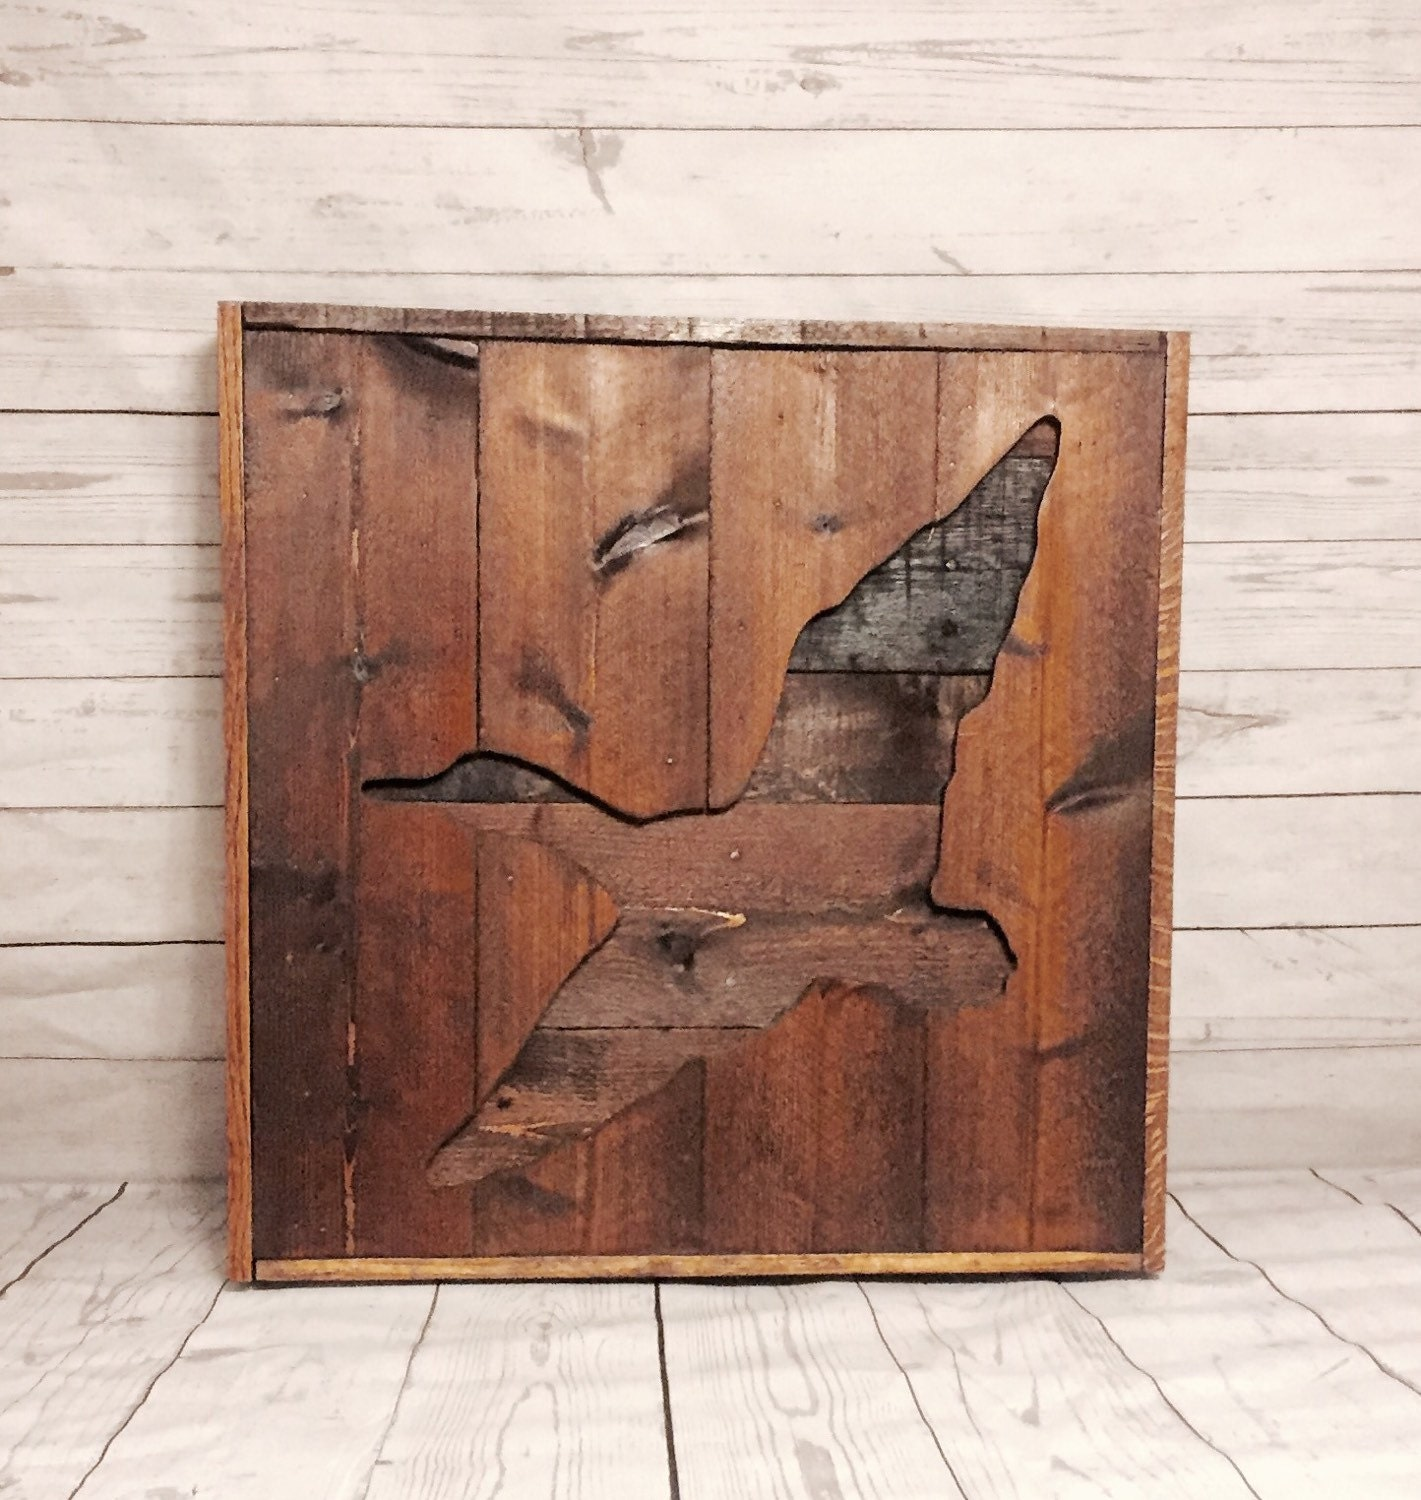 Wooden Texas Recycled Pallet Sign By Rusticrestyle On Etsy: Wooden Pallet Duck Hunting Silhouette Wall Hanging Rustic